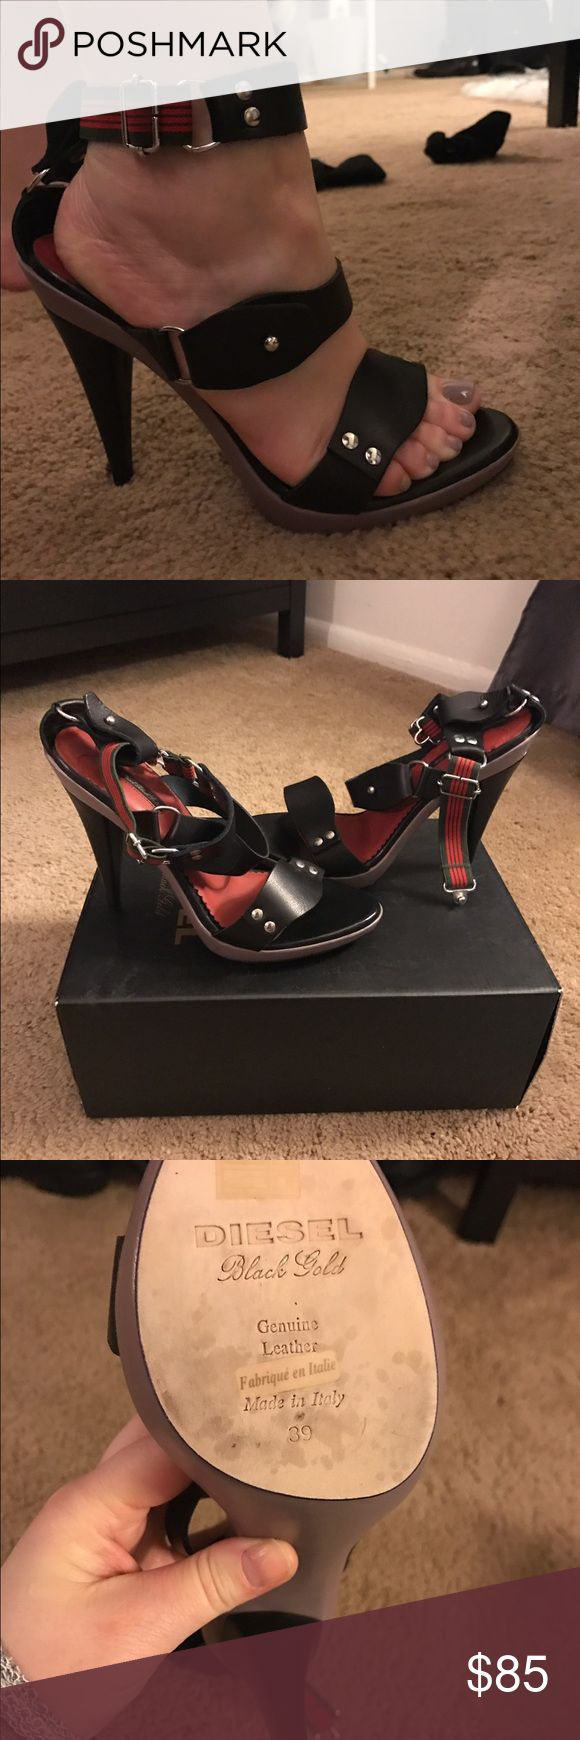 Diesel heels size 39/8.5 Brand new with box diesel heel. All leather strap with a contemporary look. Just don't have an outfit to go with so been sitting in closet. Price is firm Diesel Black Gold Shoes Heels